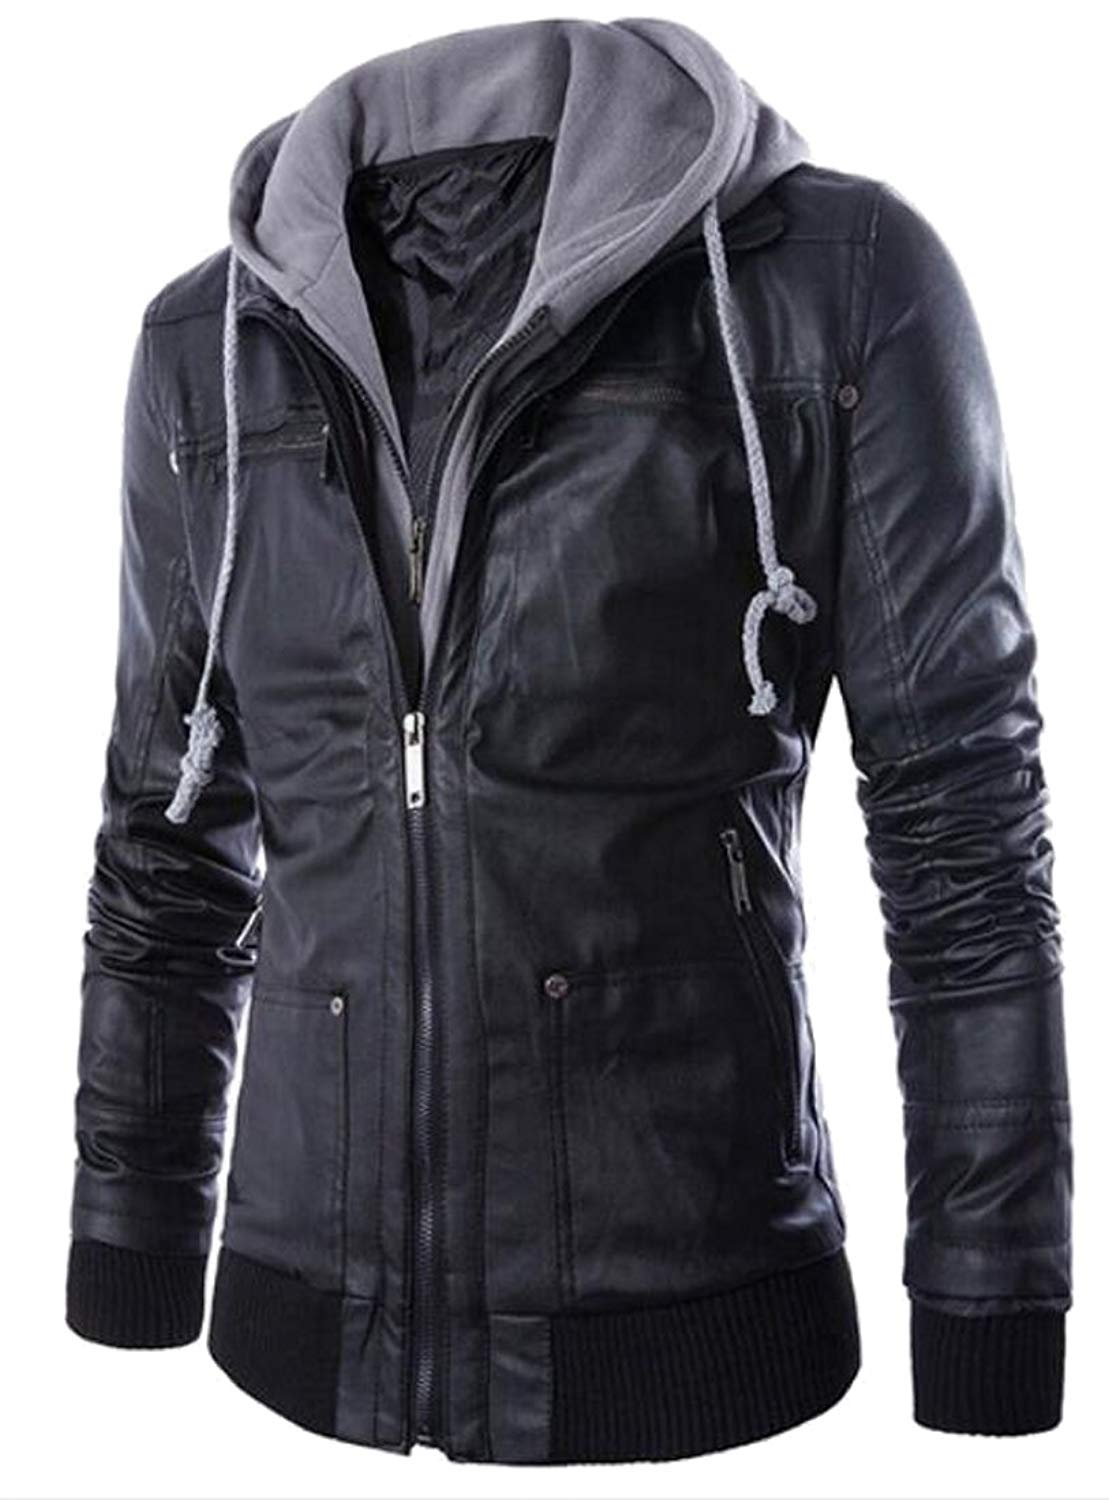 8eacbf298027 Get Quotations · Oberora Mens Fashion Zip Up Faux Leather Hoodies Biker  Jackets